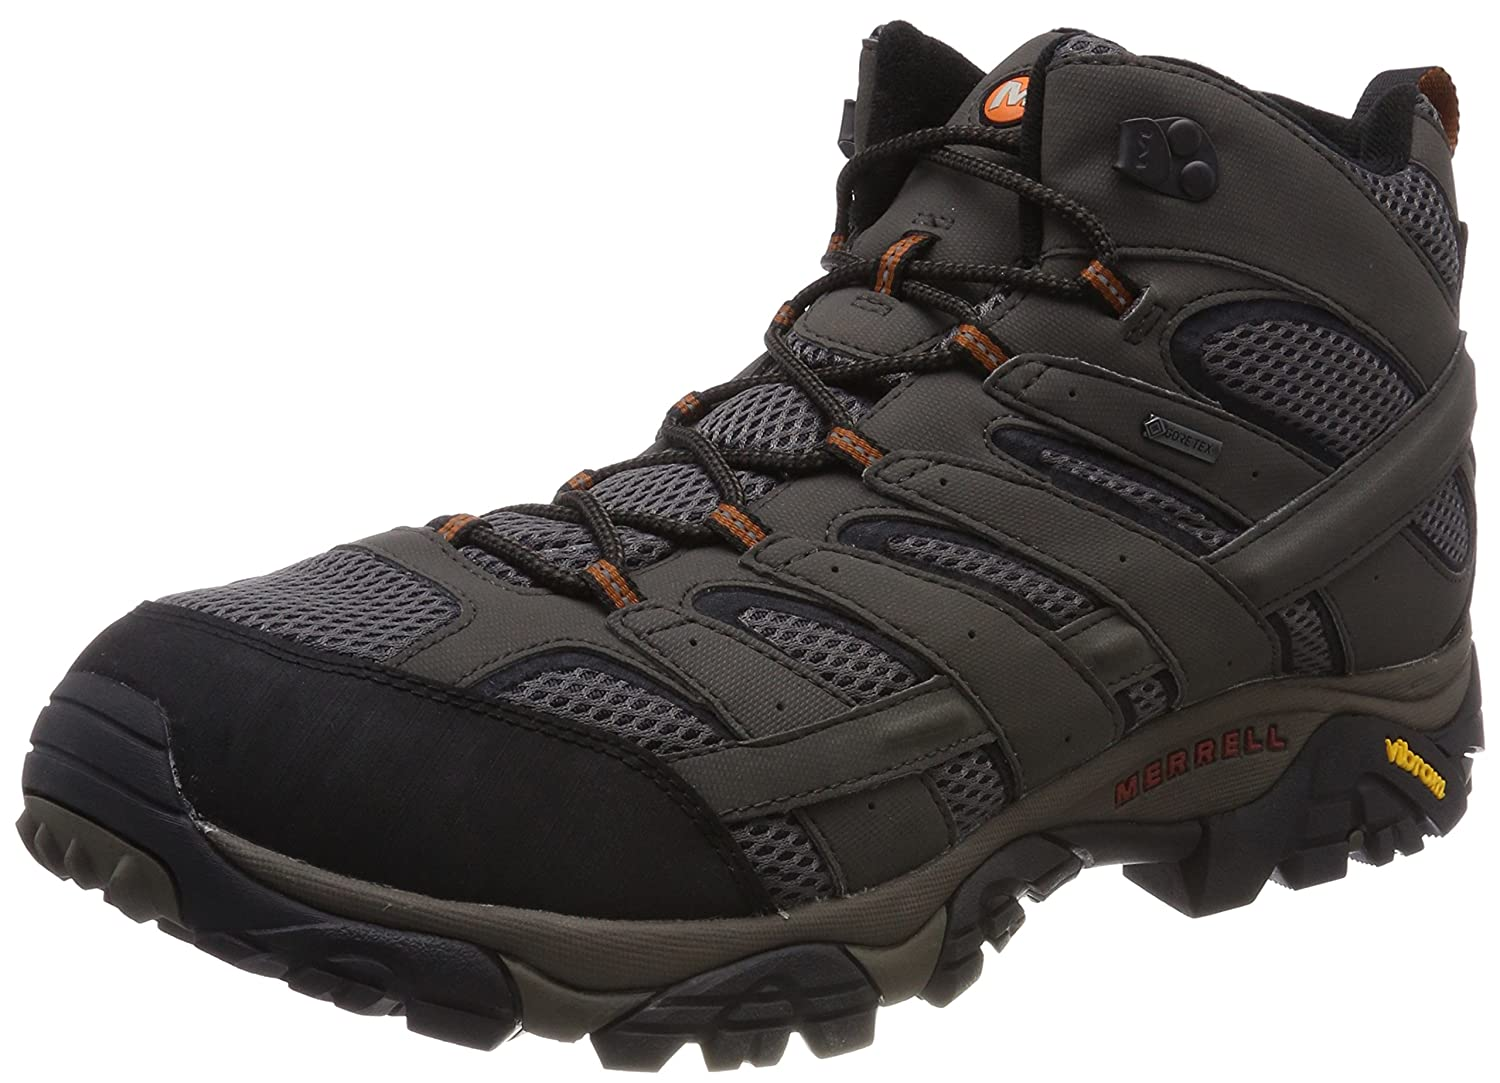 Grey (Beluga Beluga) Merrell Men's Moab 2 Mid GTX High Rise Hiking Boots